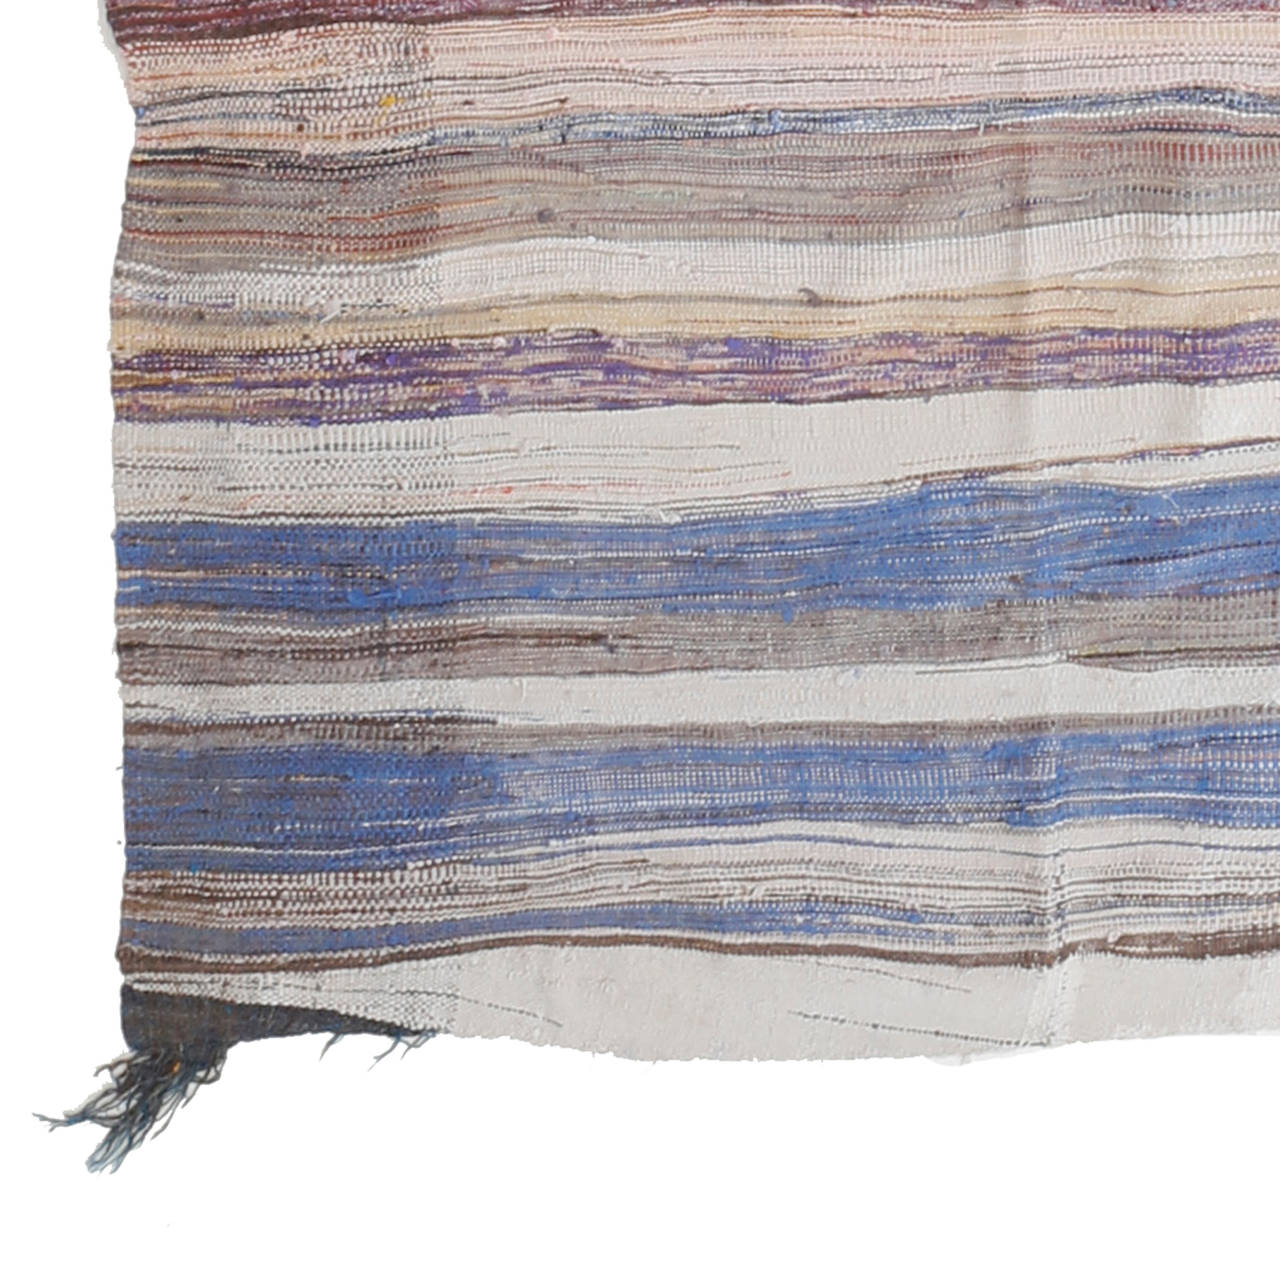 Moroccan Boucherouite Rug For Sale At 1stdibs: Boucherouite Moroccan Berber Flat-Weave Rug For Sale At